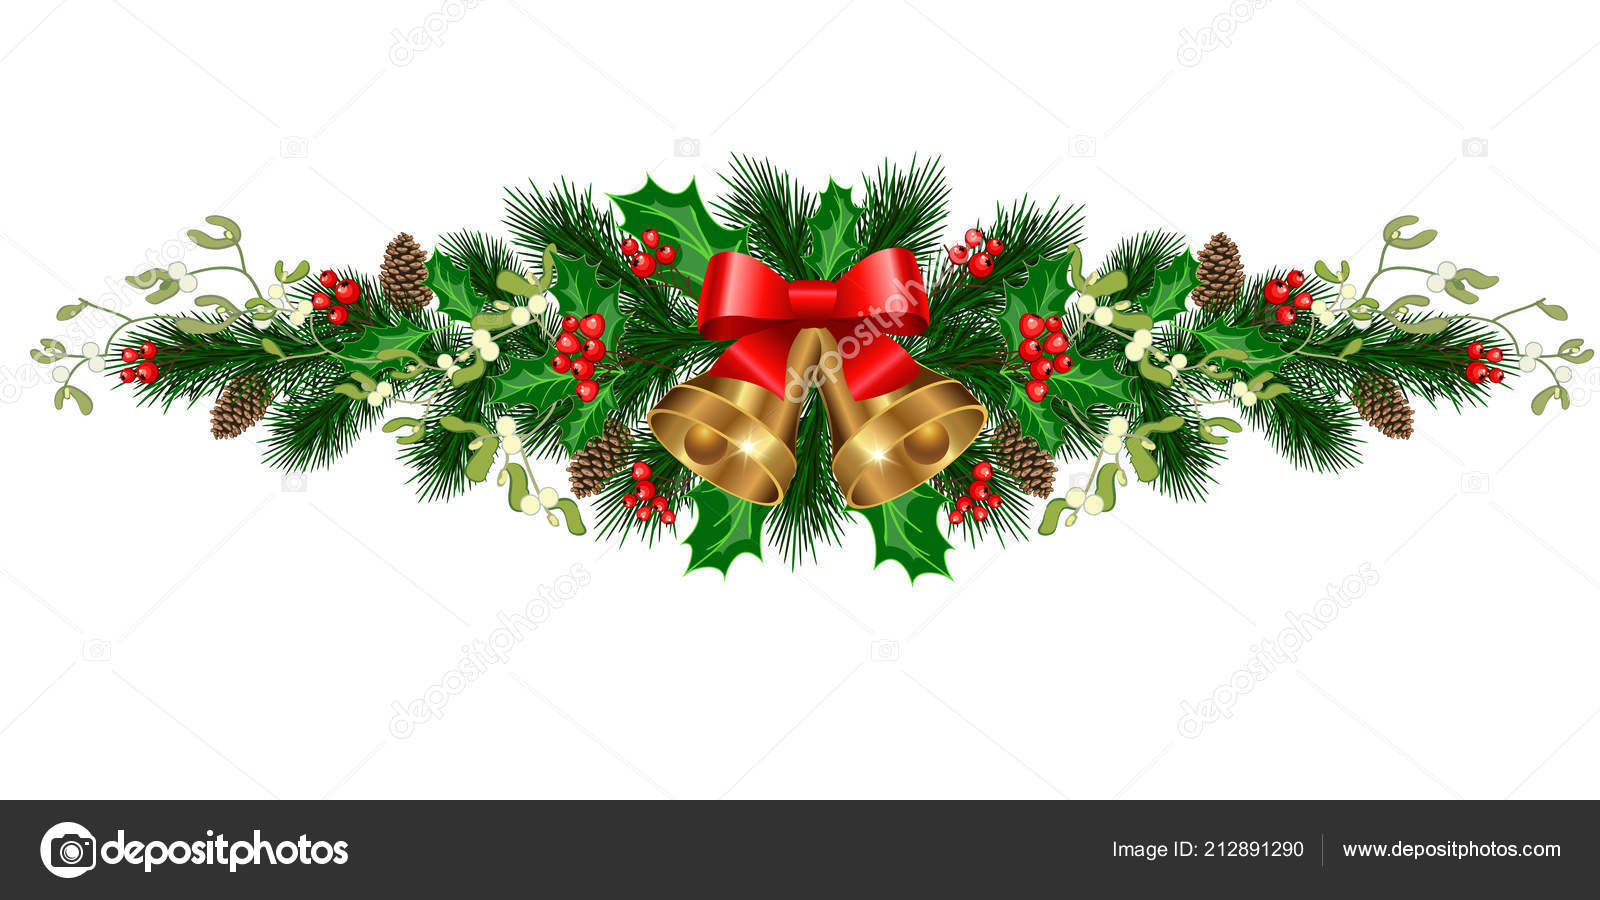 christmas decorations bells fir tree pine cones mistletoe holly berries stock vector